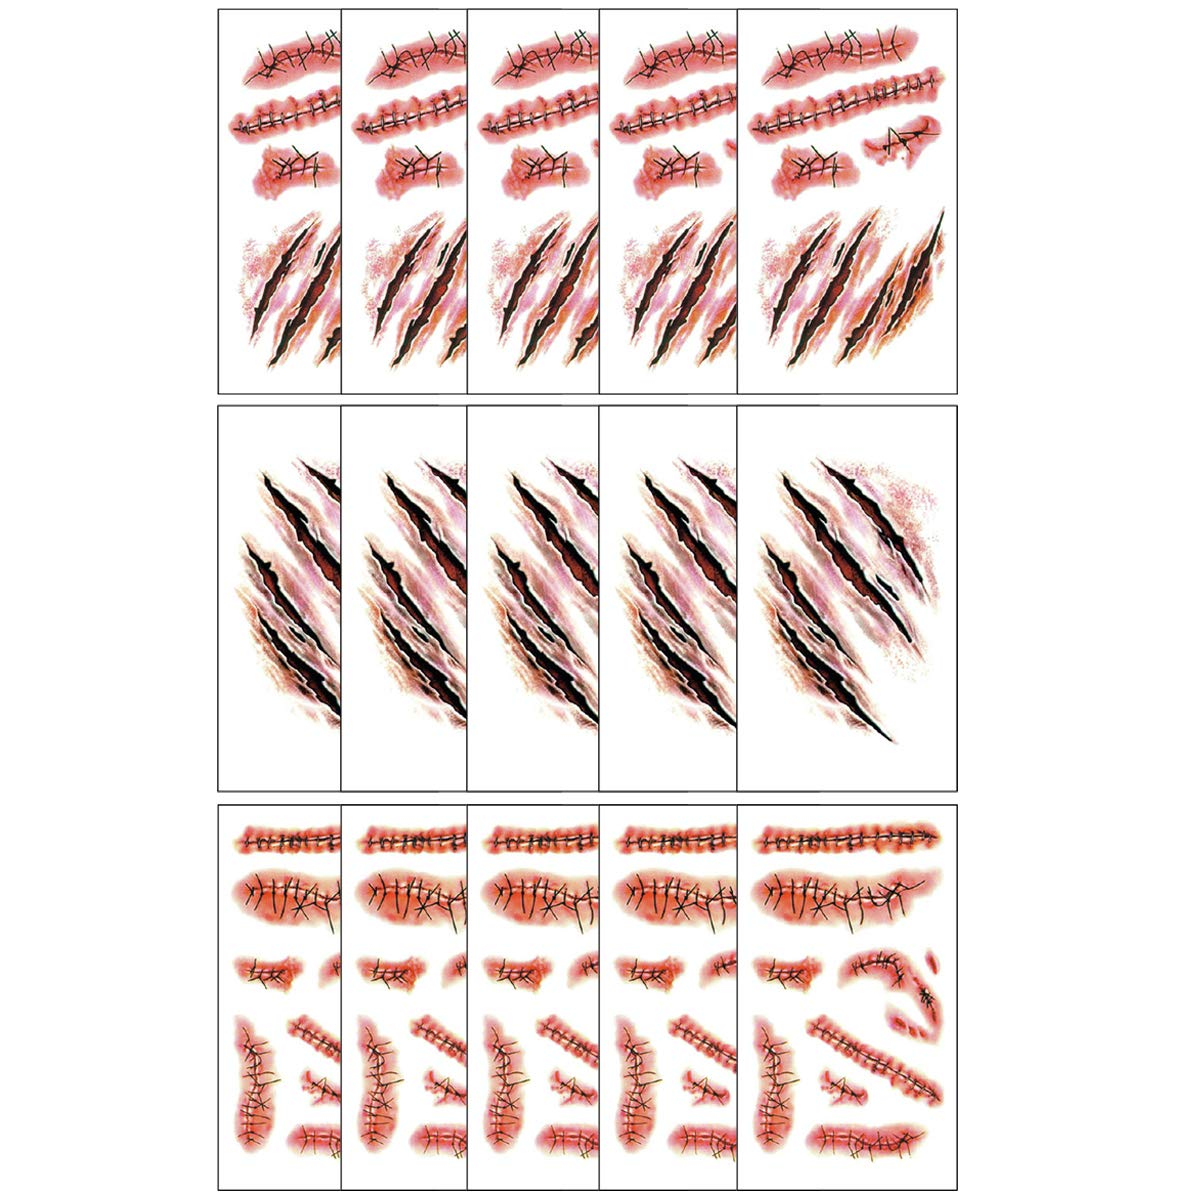 Fake Bloody Wound,Horror Realistic Stitch Scar Scab,Waterproof Temporary Tattoos Sticker for Halloween Masquerade, Prank Makeup Props,Party Costume